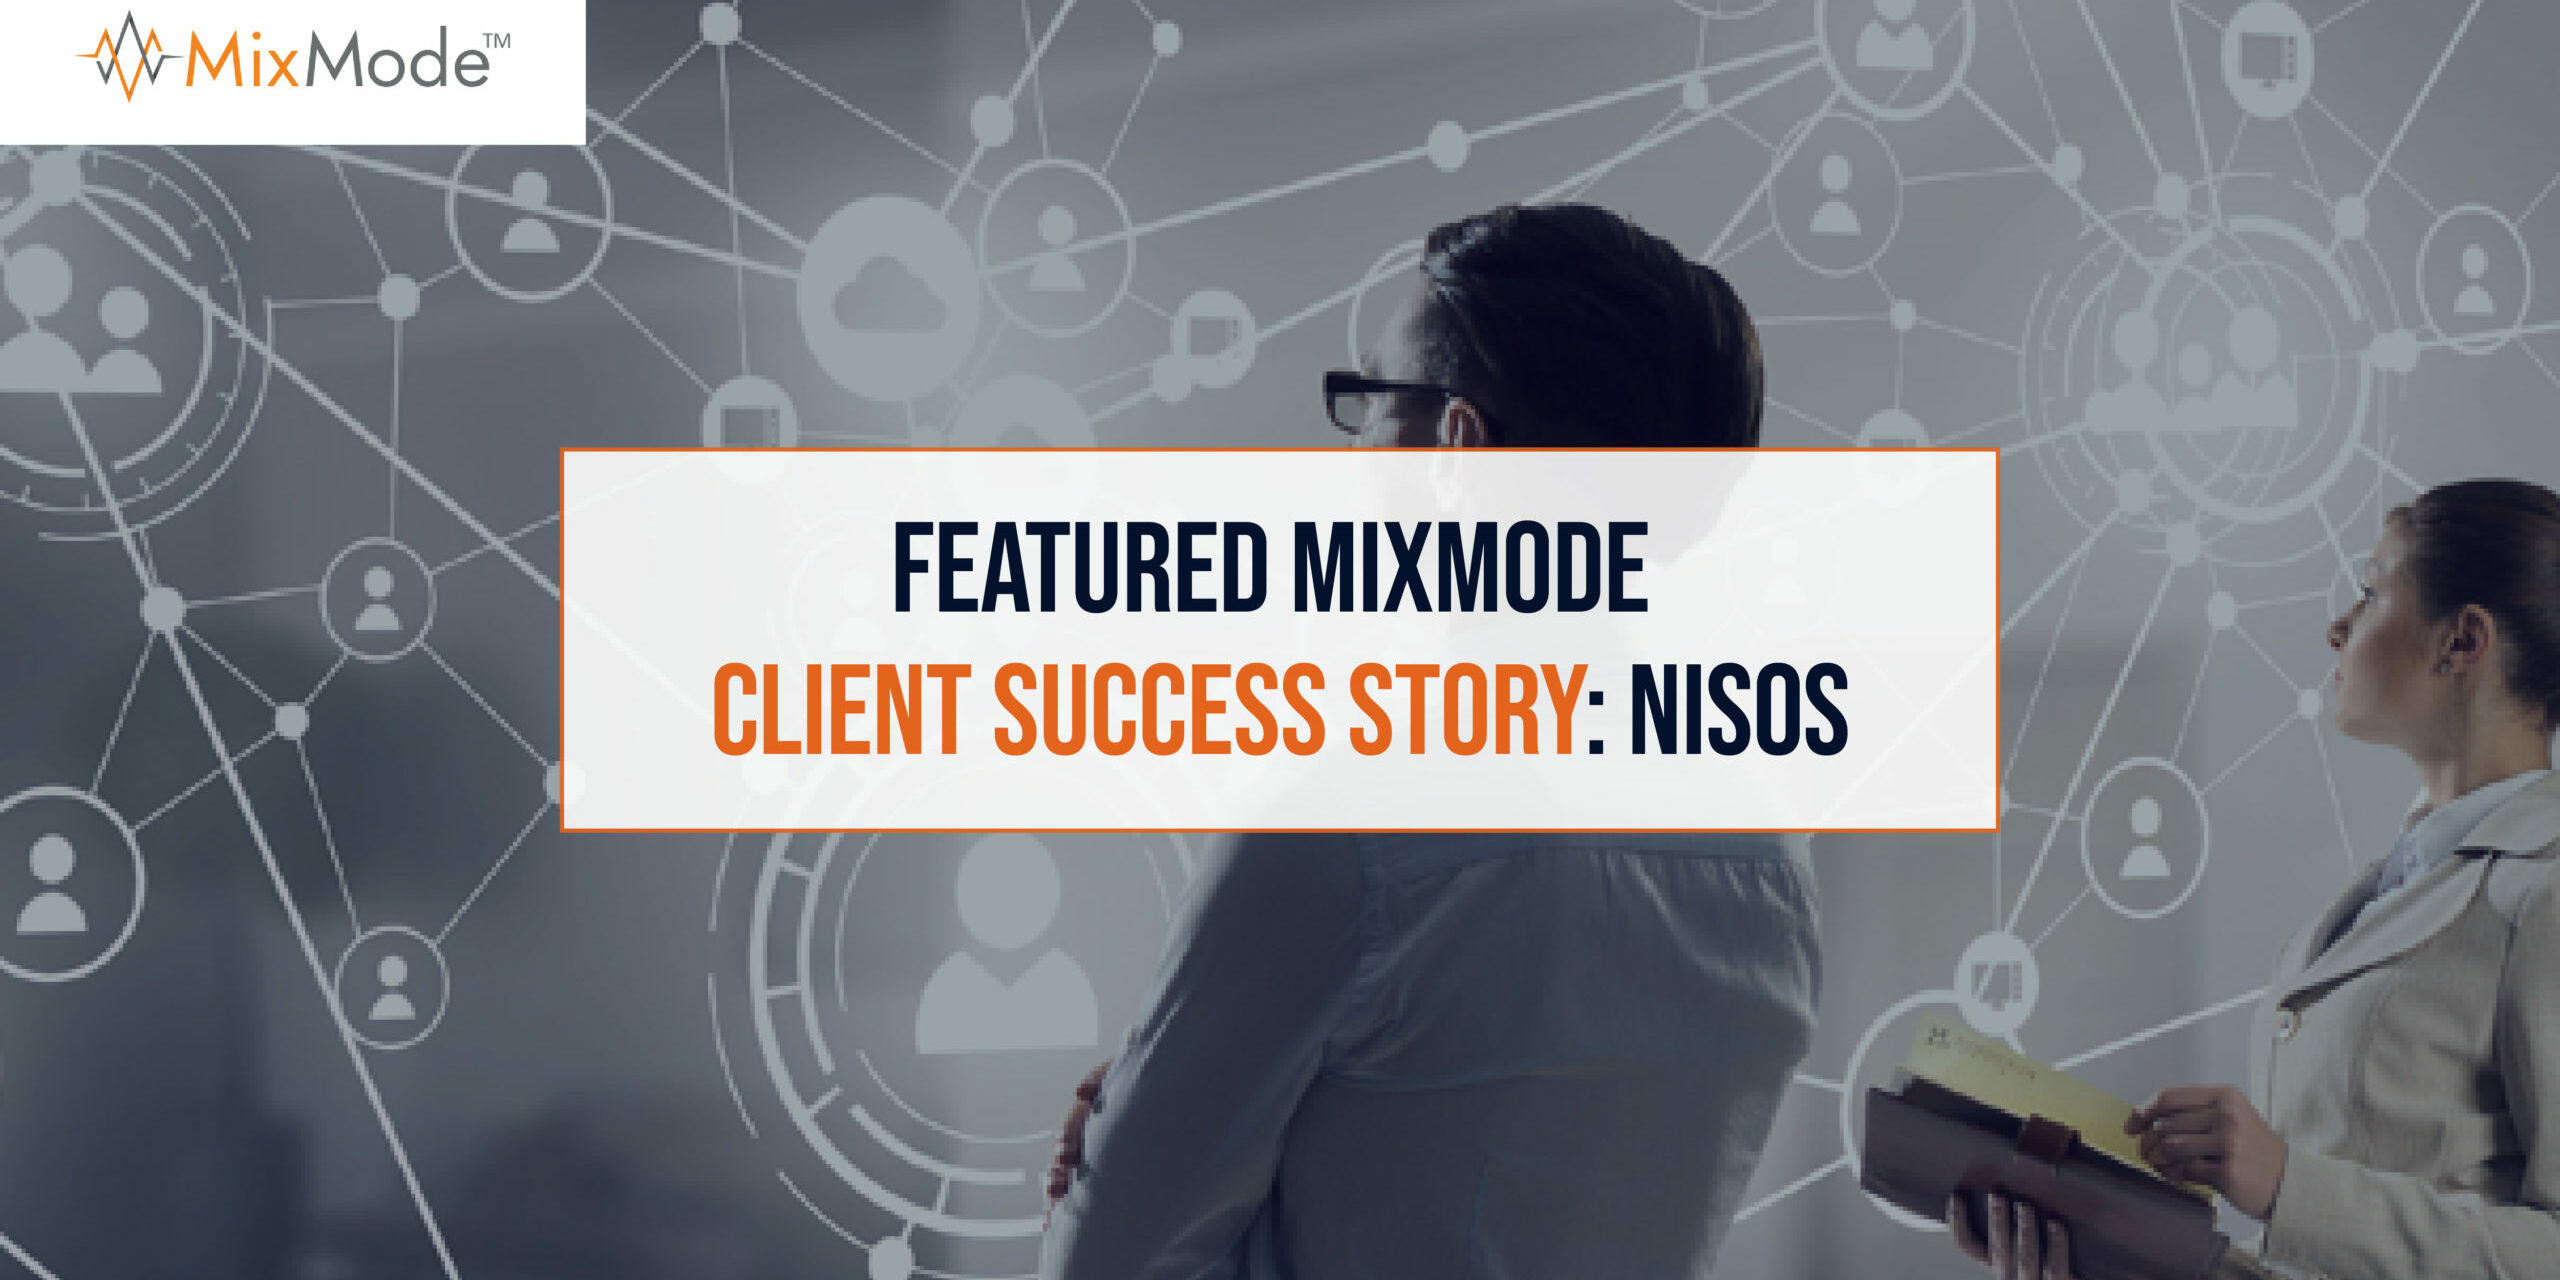 MixMode - Featured MixMode Client Success Story-Nisos-25